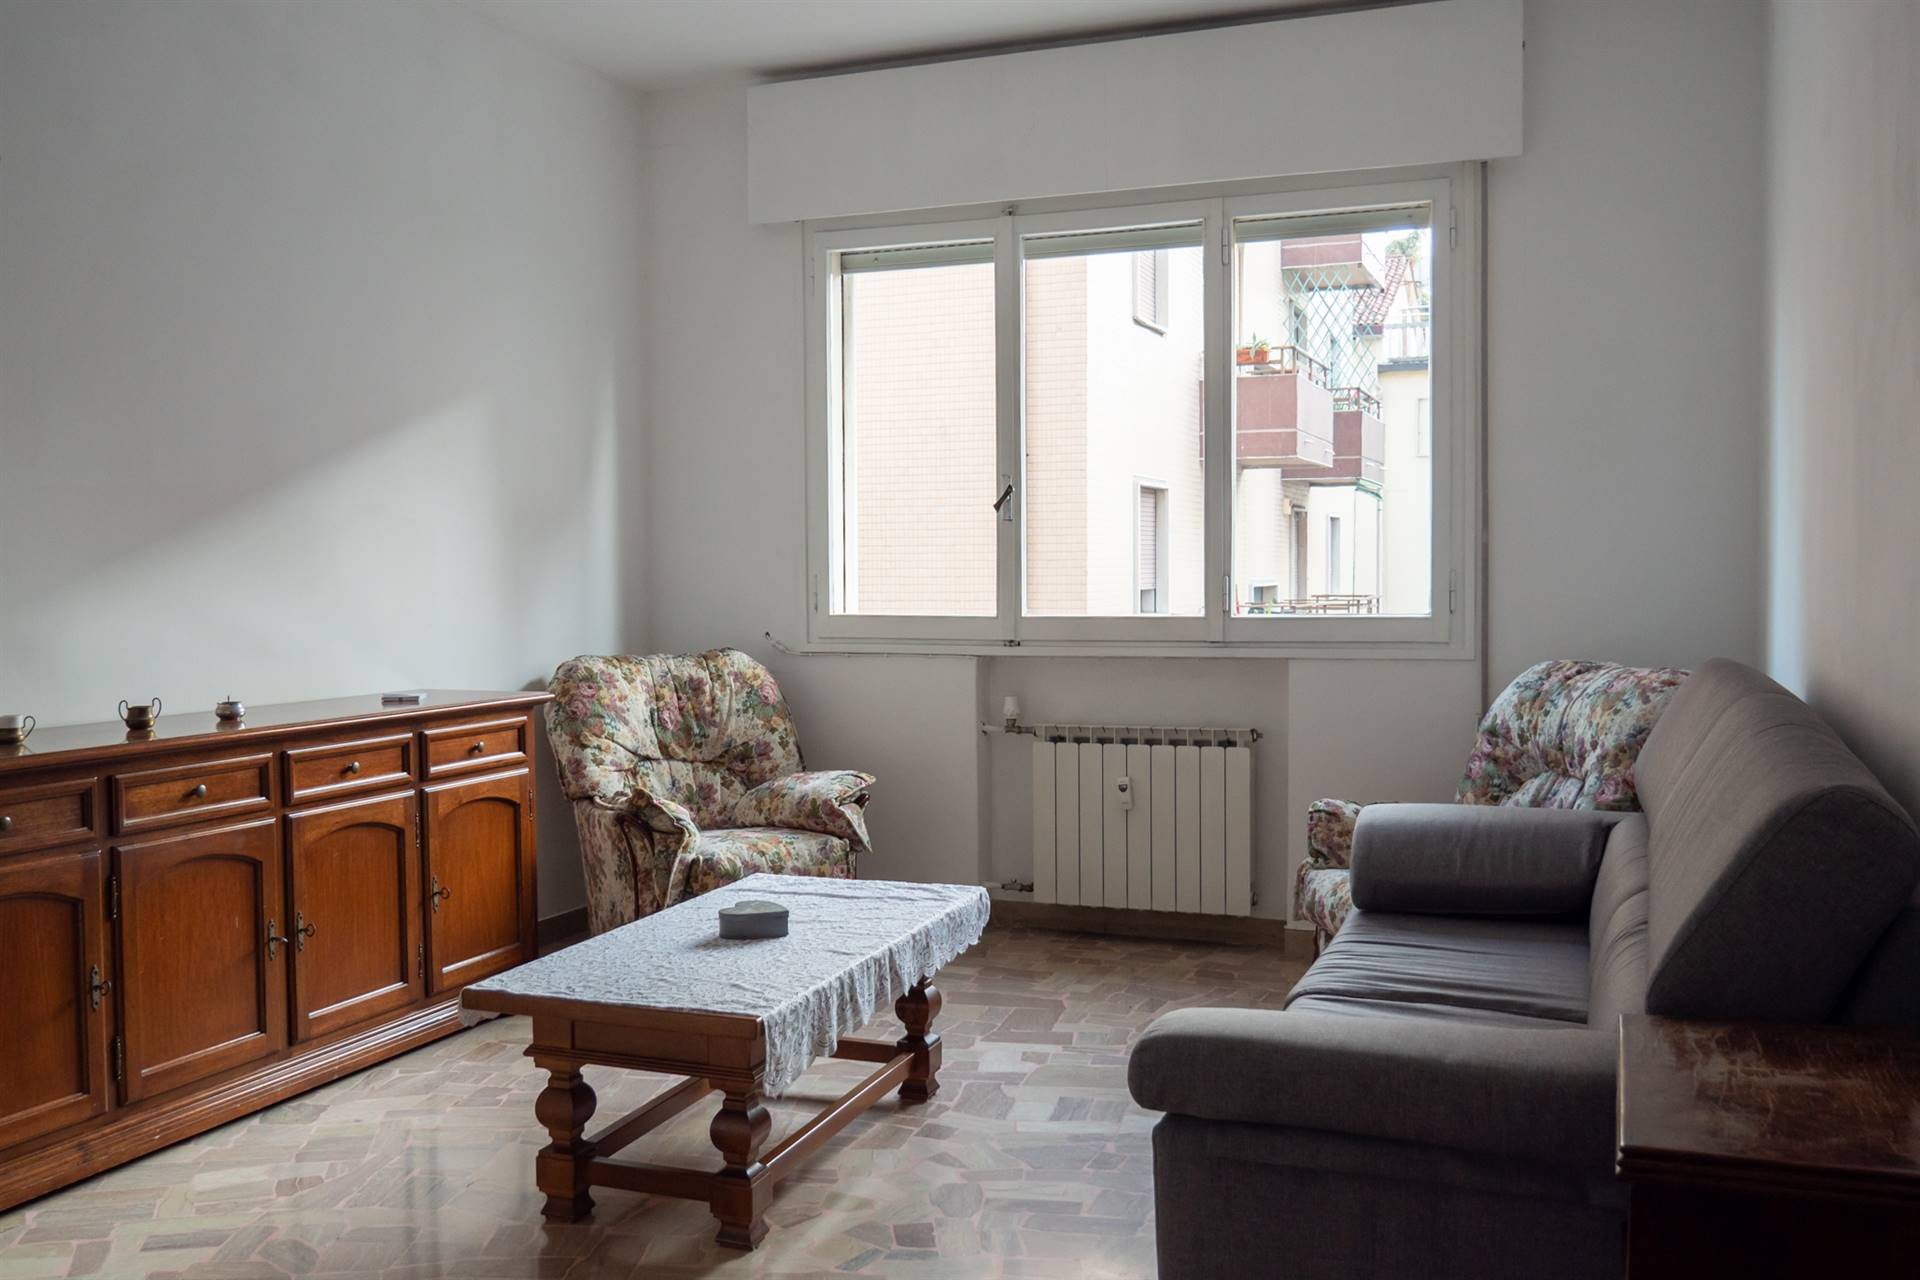 MESTRE CENTRO, VENEZIA, Apartment for rent of 80 Sq. mt., Habitable, Heating Centralized, Energetic class: G, placed at 2° on 4, composed by: 4 Rooms,